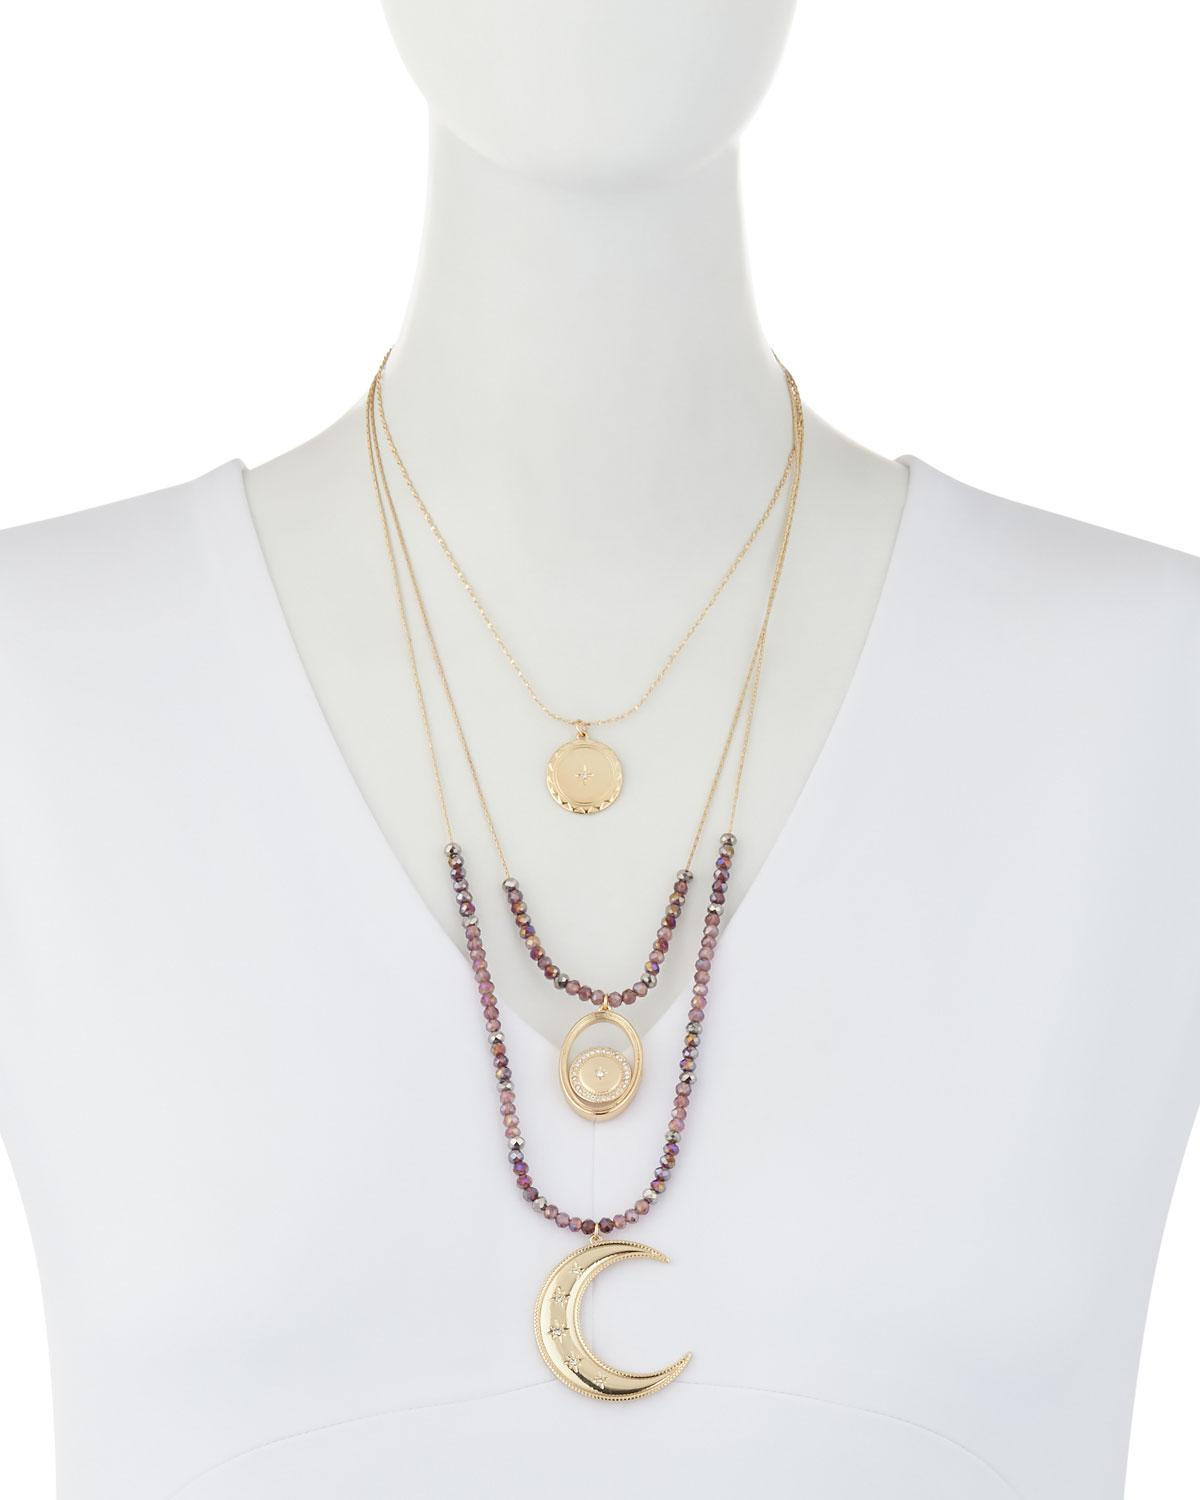 Lydell Nyc Three-Row Celestial Charm Necklace 5NCqD